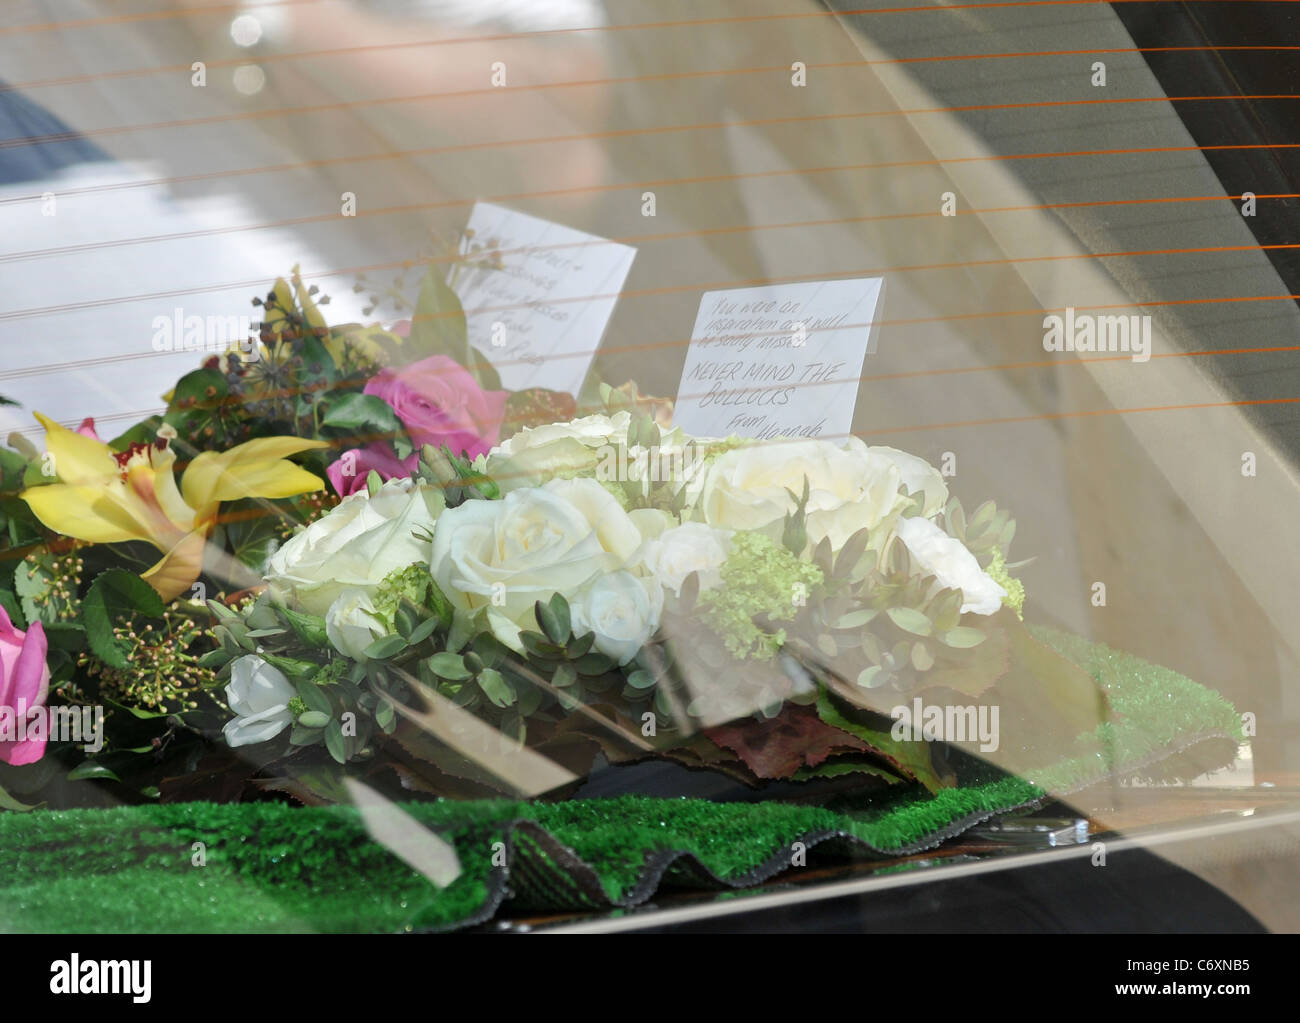 Flowers are taken to the funeral of malcolm mclaren with the words flowers are taken to the funeral of malcolm mclaren with the words never mind the bollocks written on the card london england izmirmasajfo